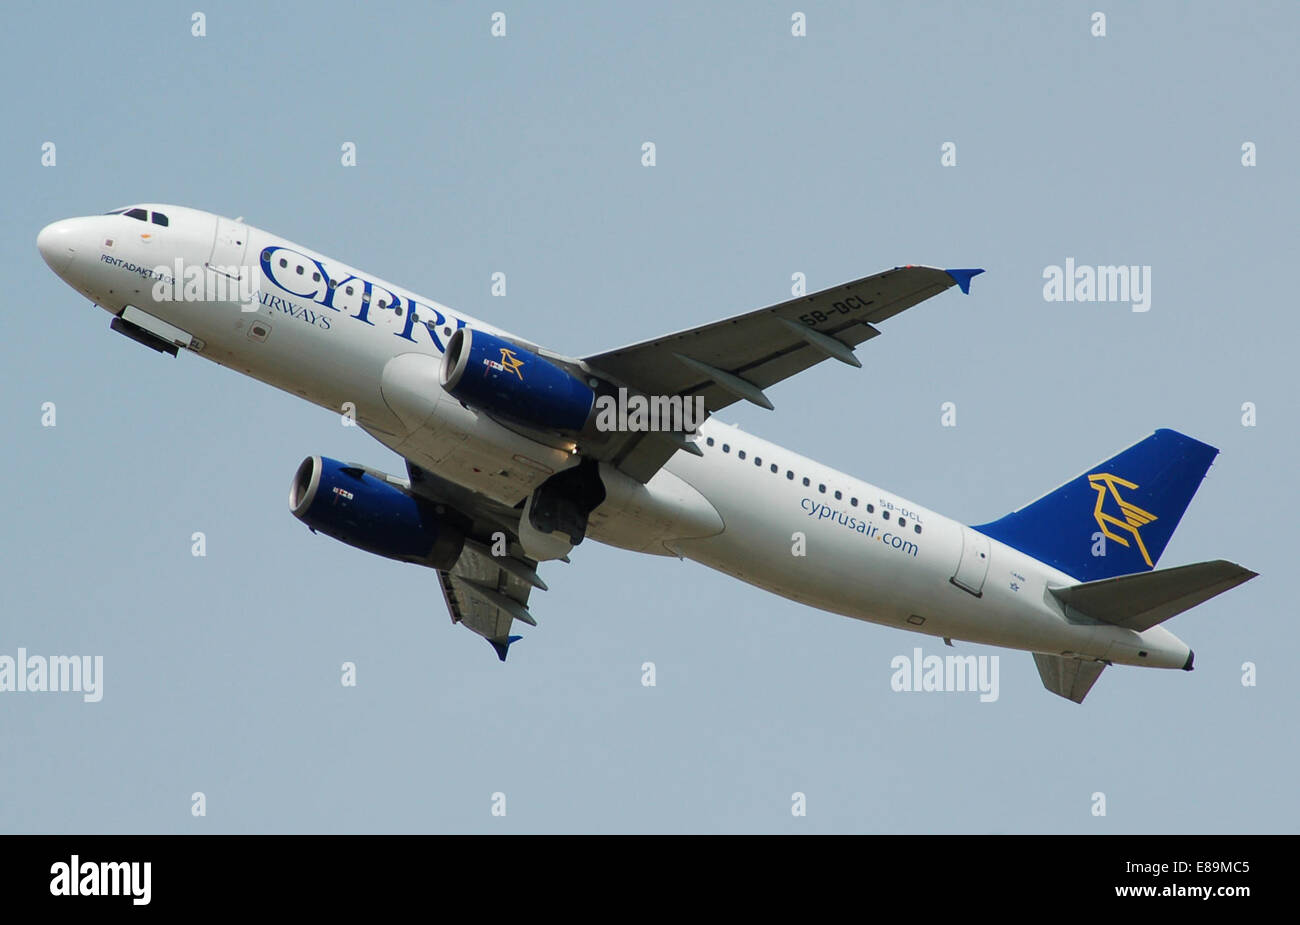 Cyprus Airways Airbus A320-200 (5B-DCL) departs London Heathrow Airport, England, 2nd July 2014. The undercarriage - Stock Image